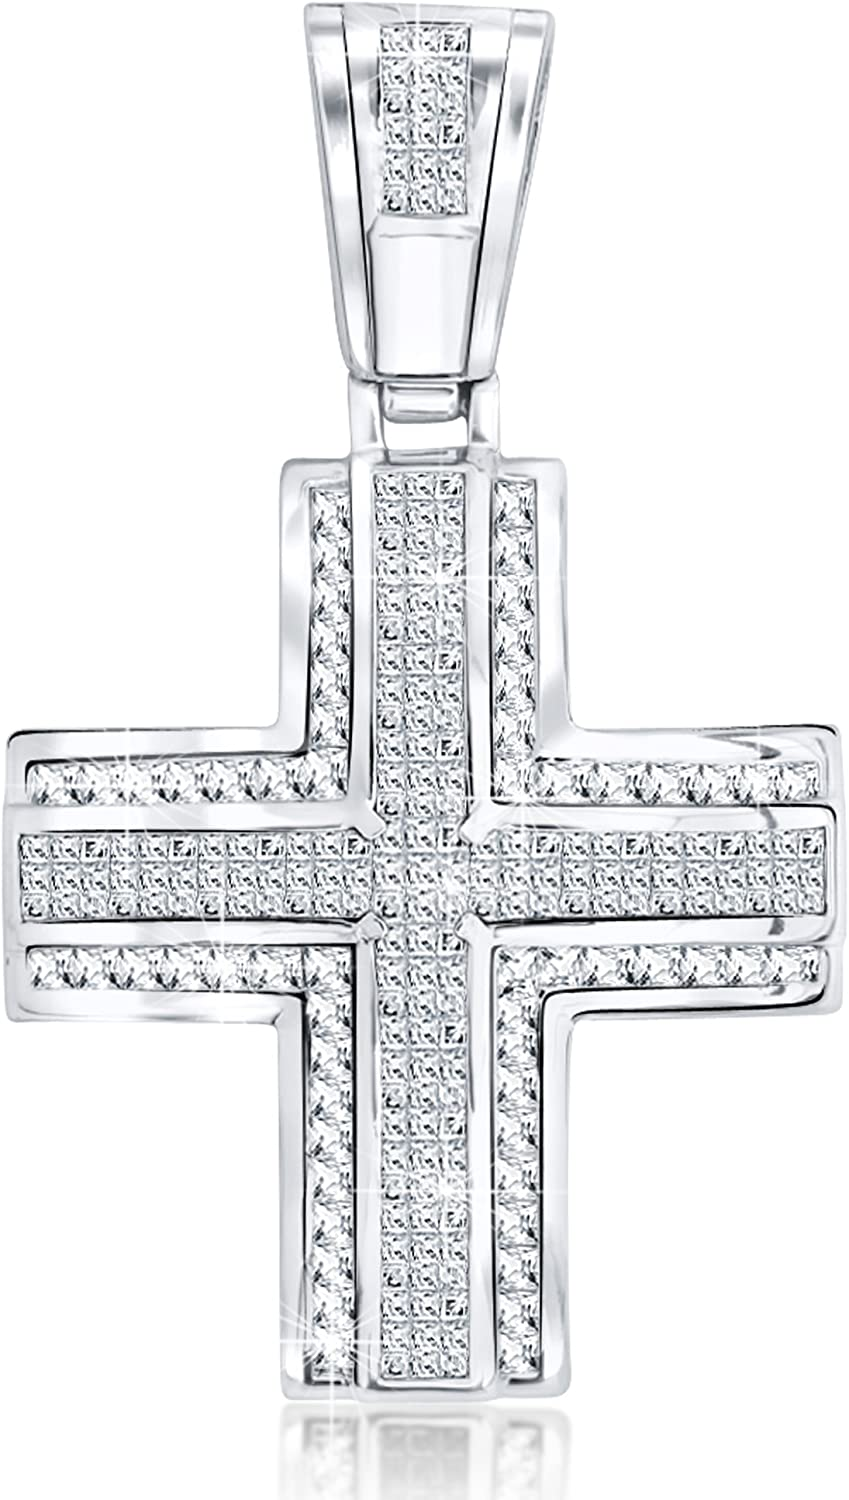 CZ Large Jewelry Tisoro 925 Solid Sterling Silver Big Cubic Zirconia Cross Pendant for Necklace